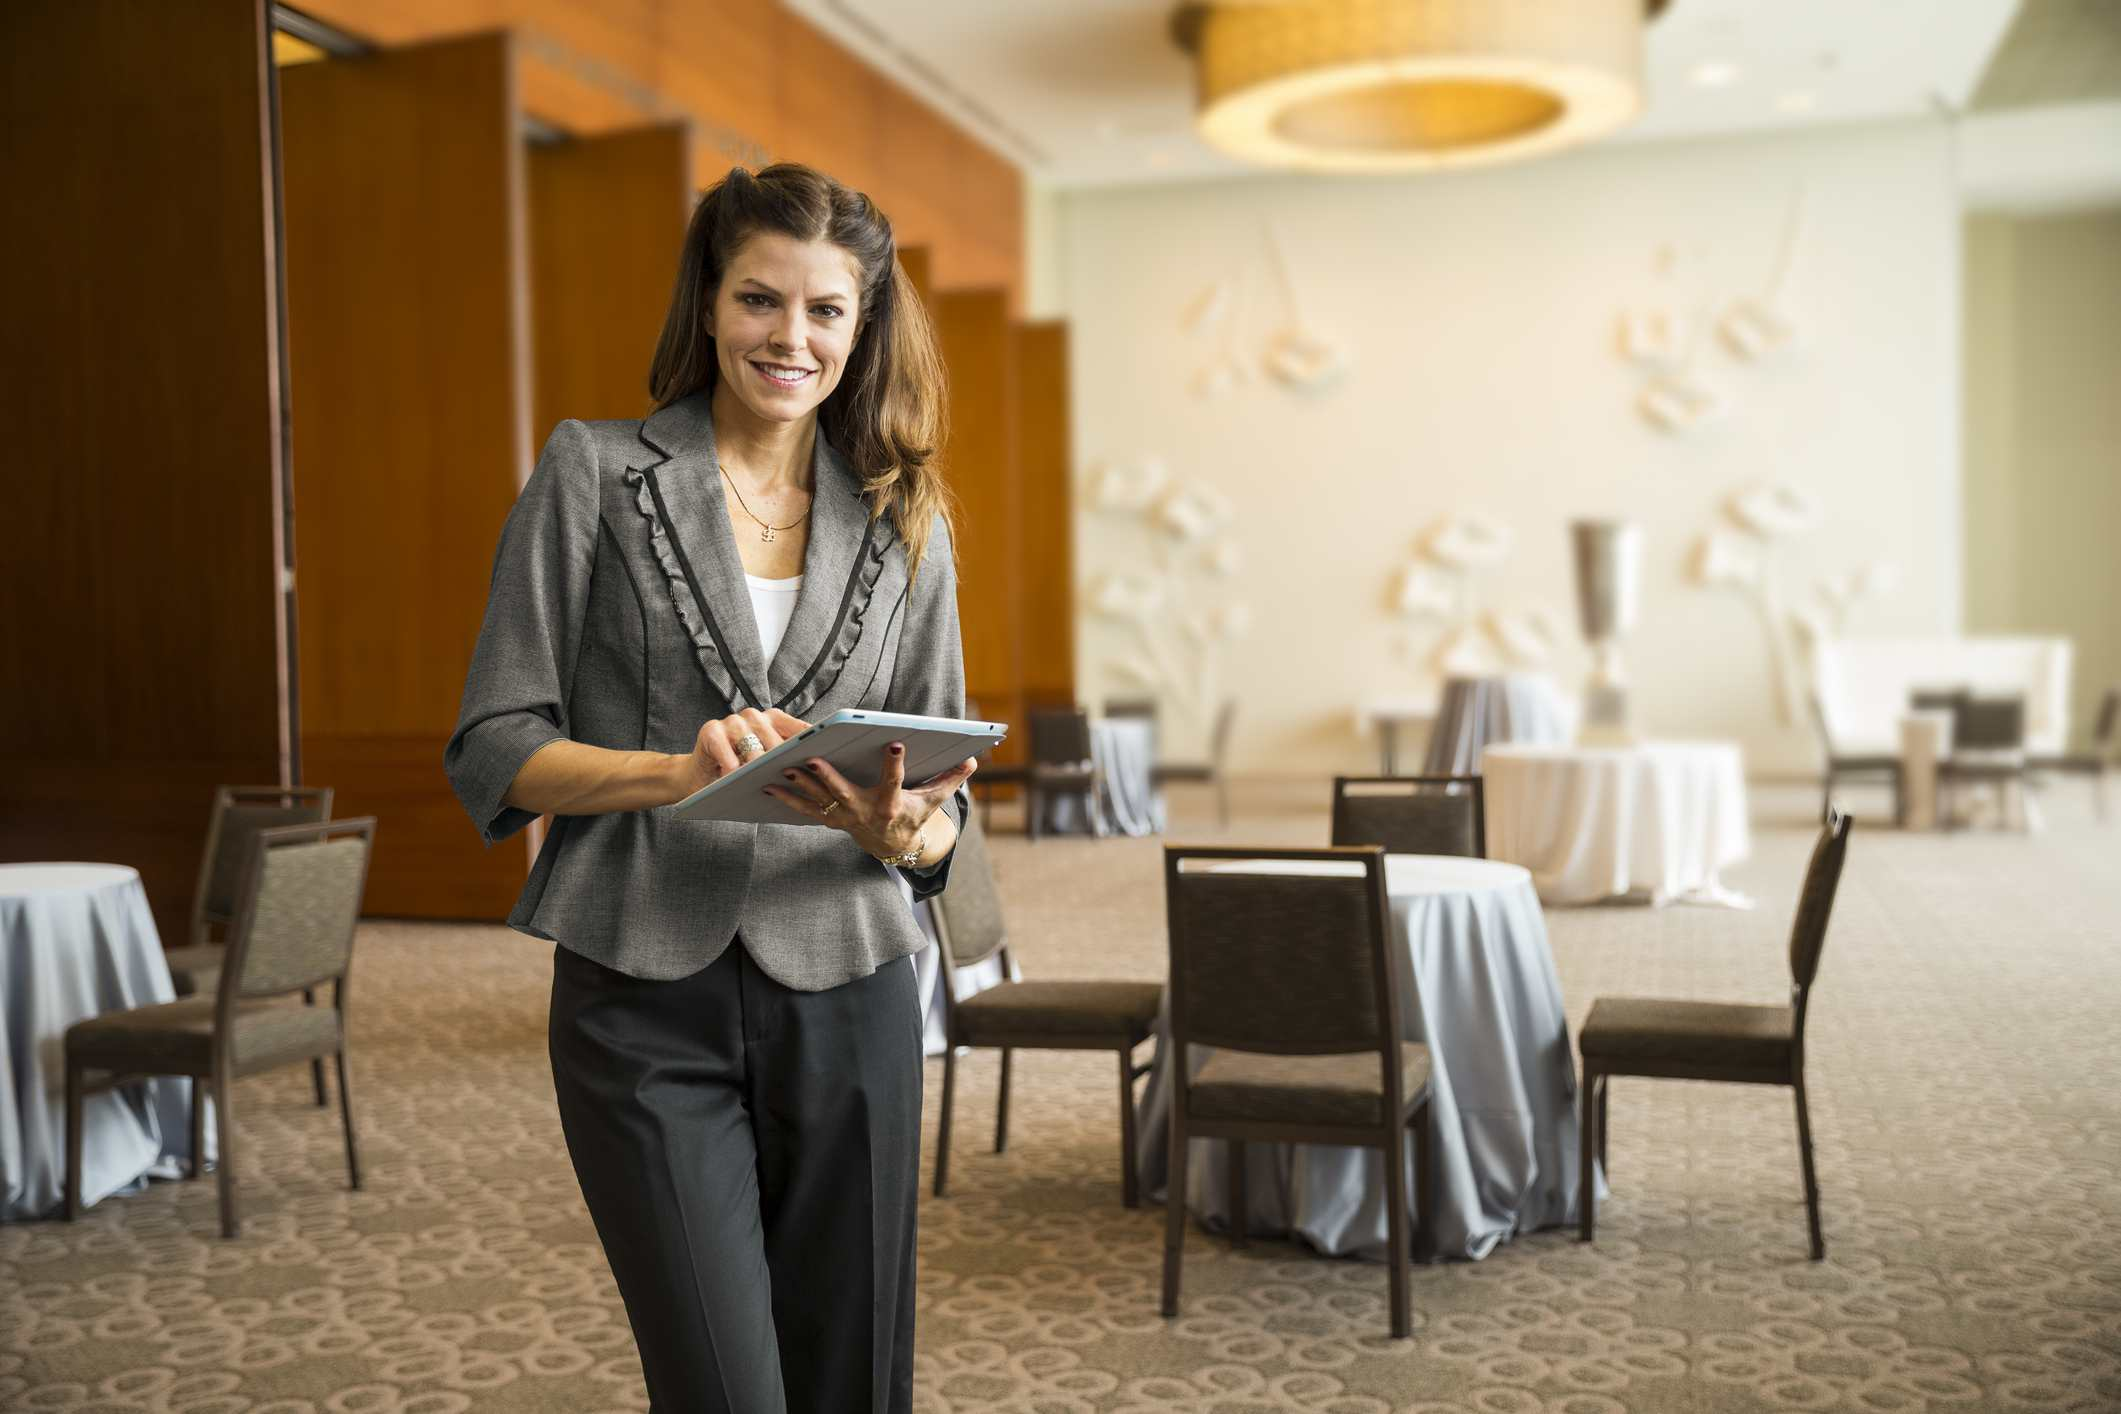 Woman planning an event in a hotel